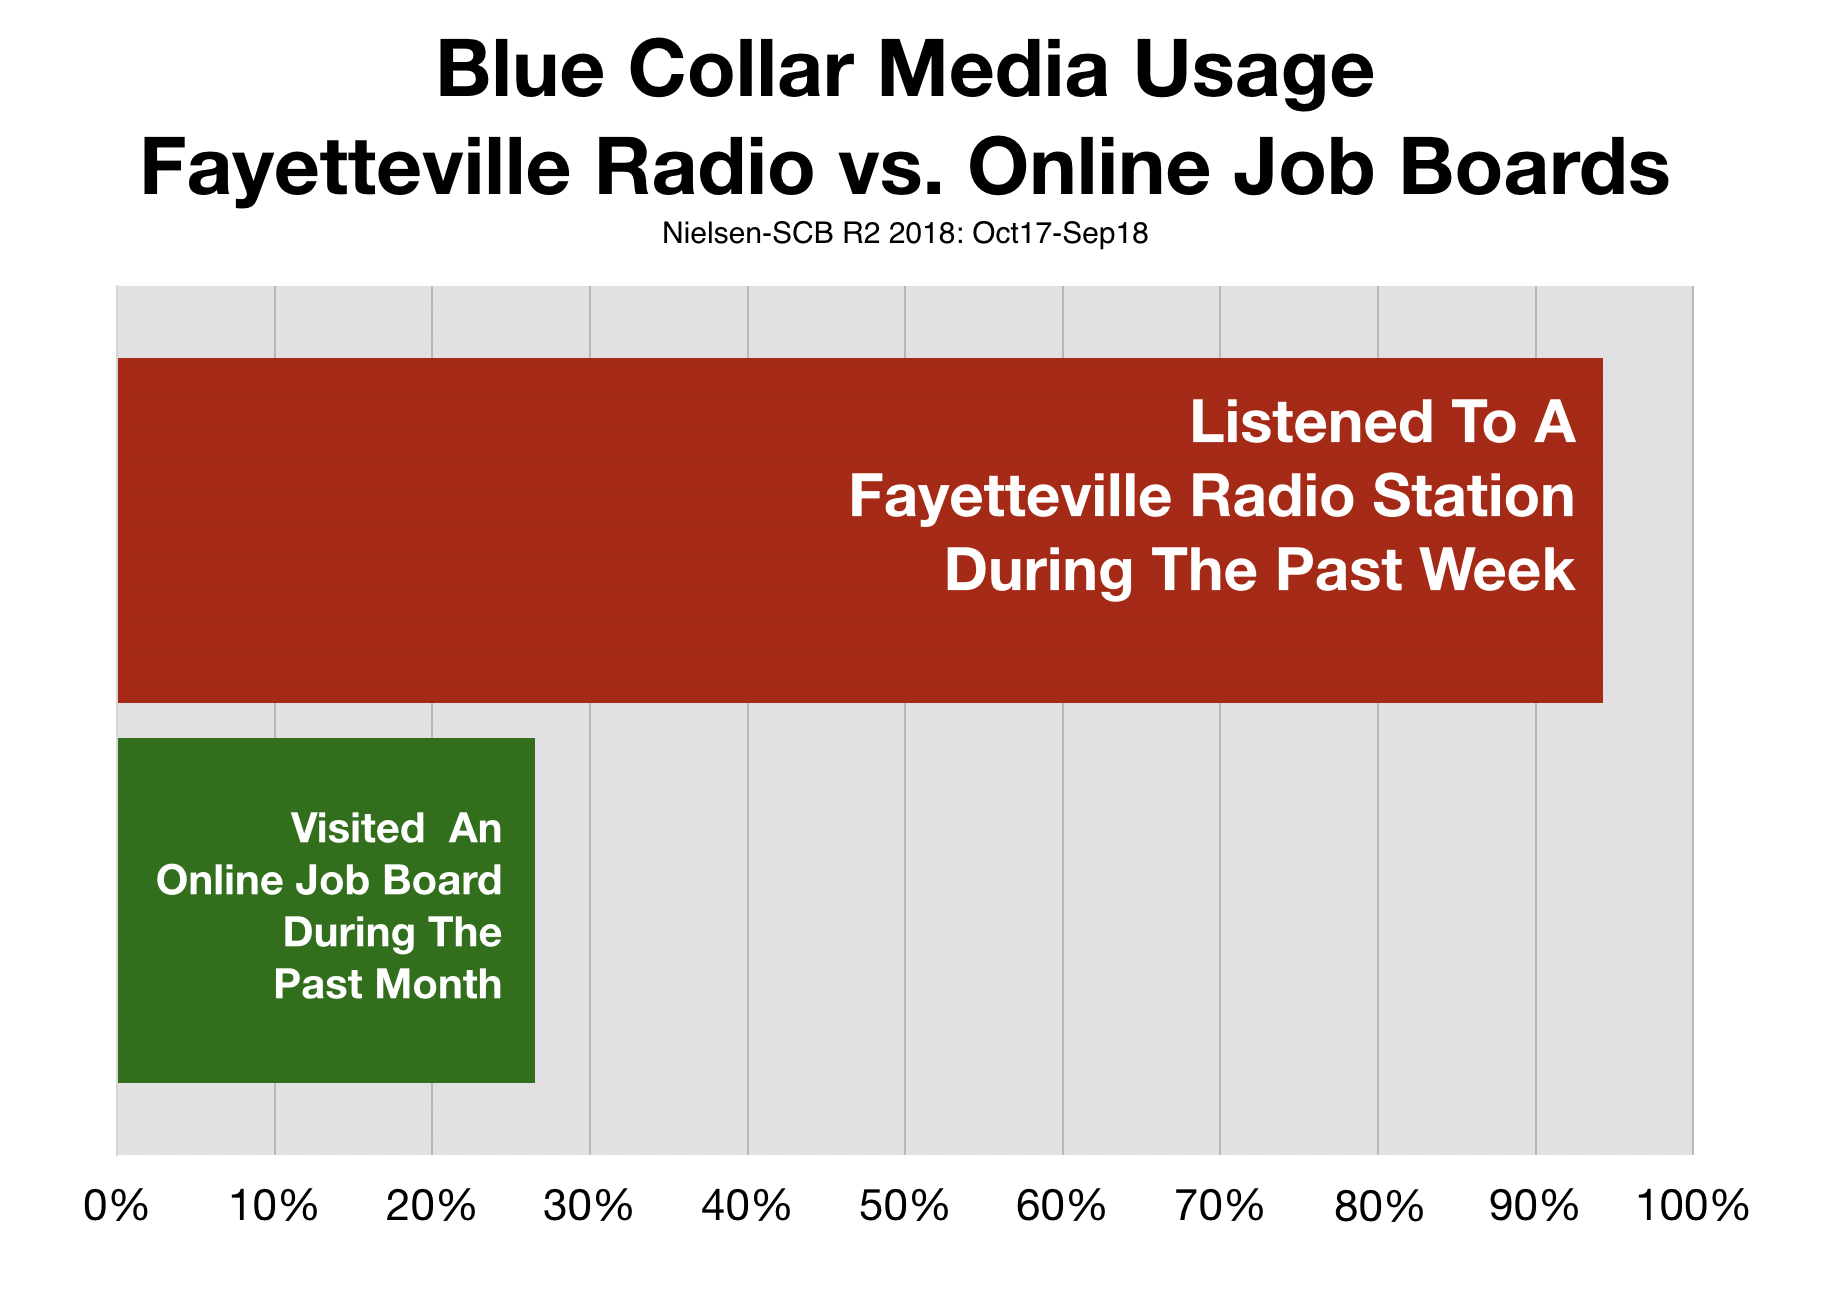 Reach of Fayetteville Radio vs. Online Job Boards